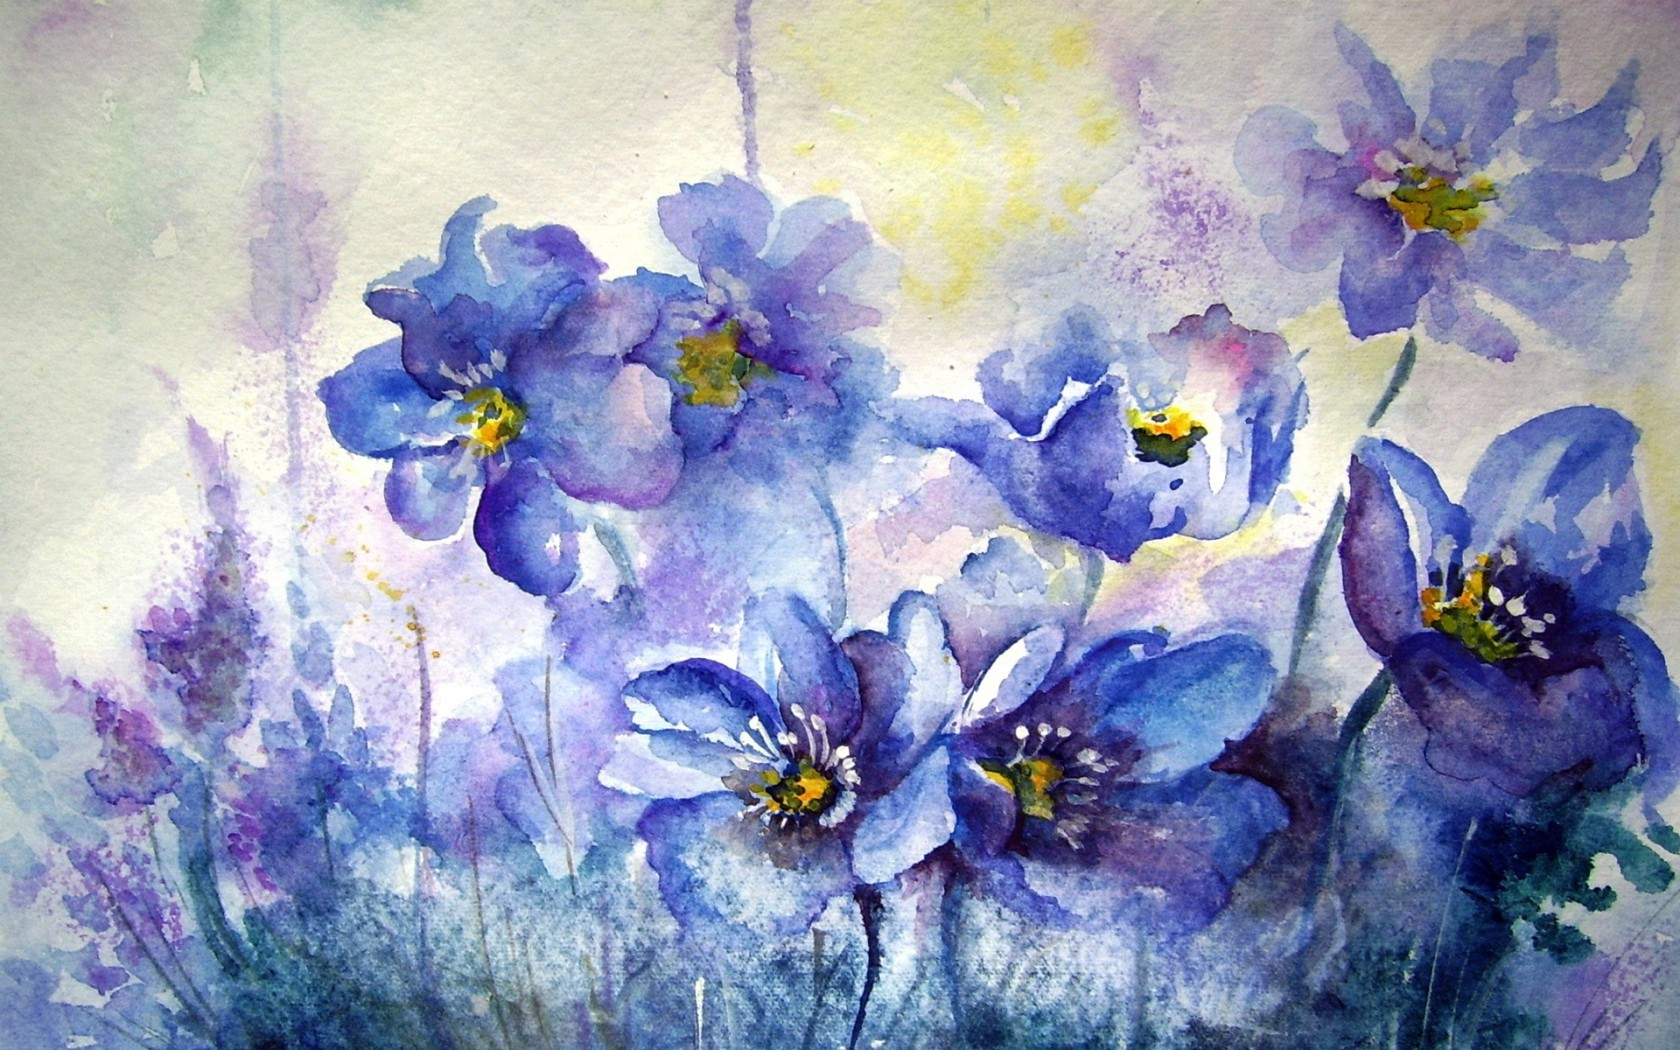 Flower Painting Watercolor Wallpaper 1680x1050 70424 Wallpaperup